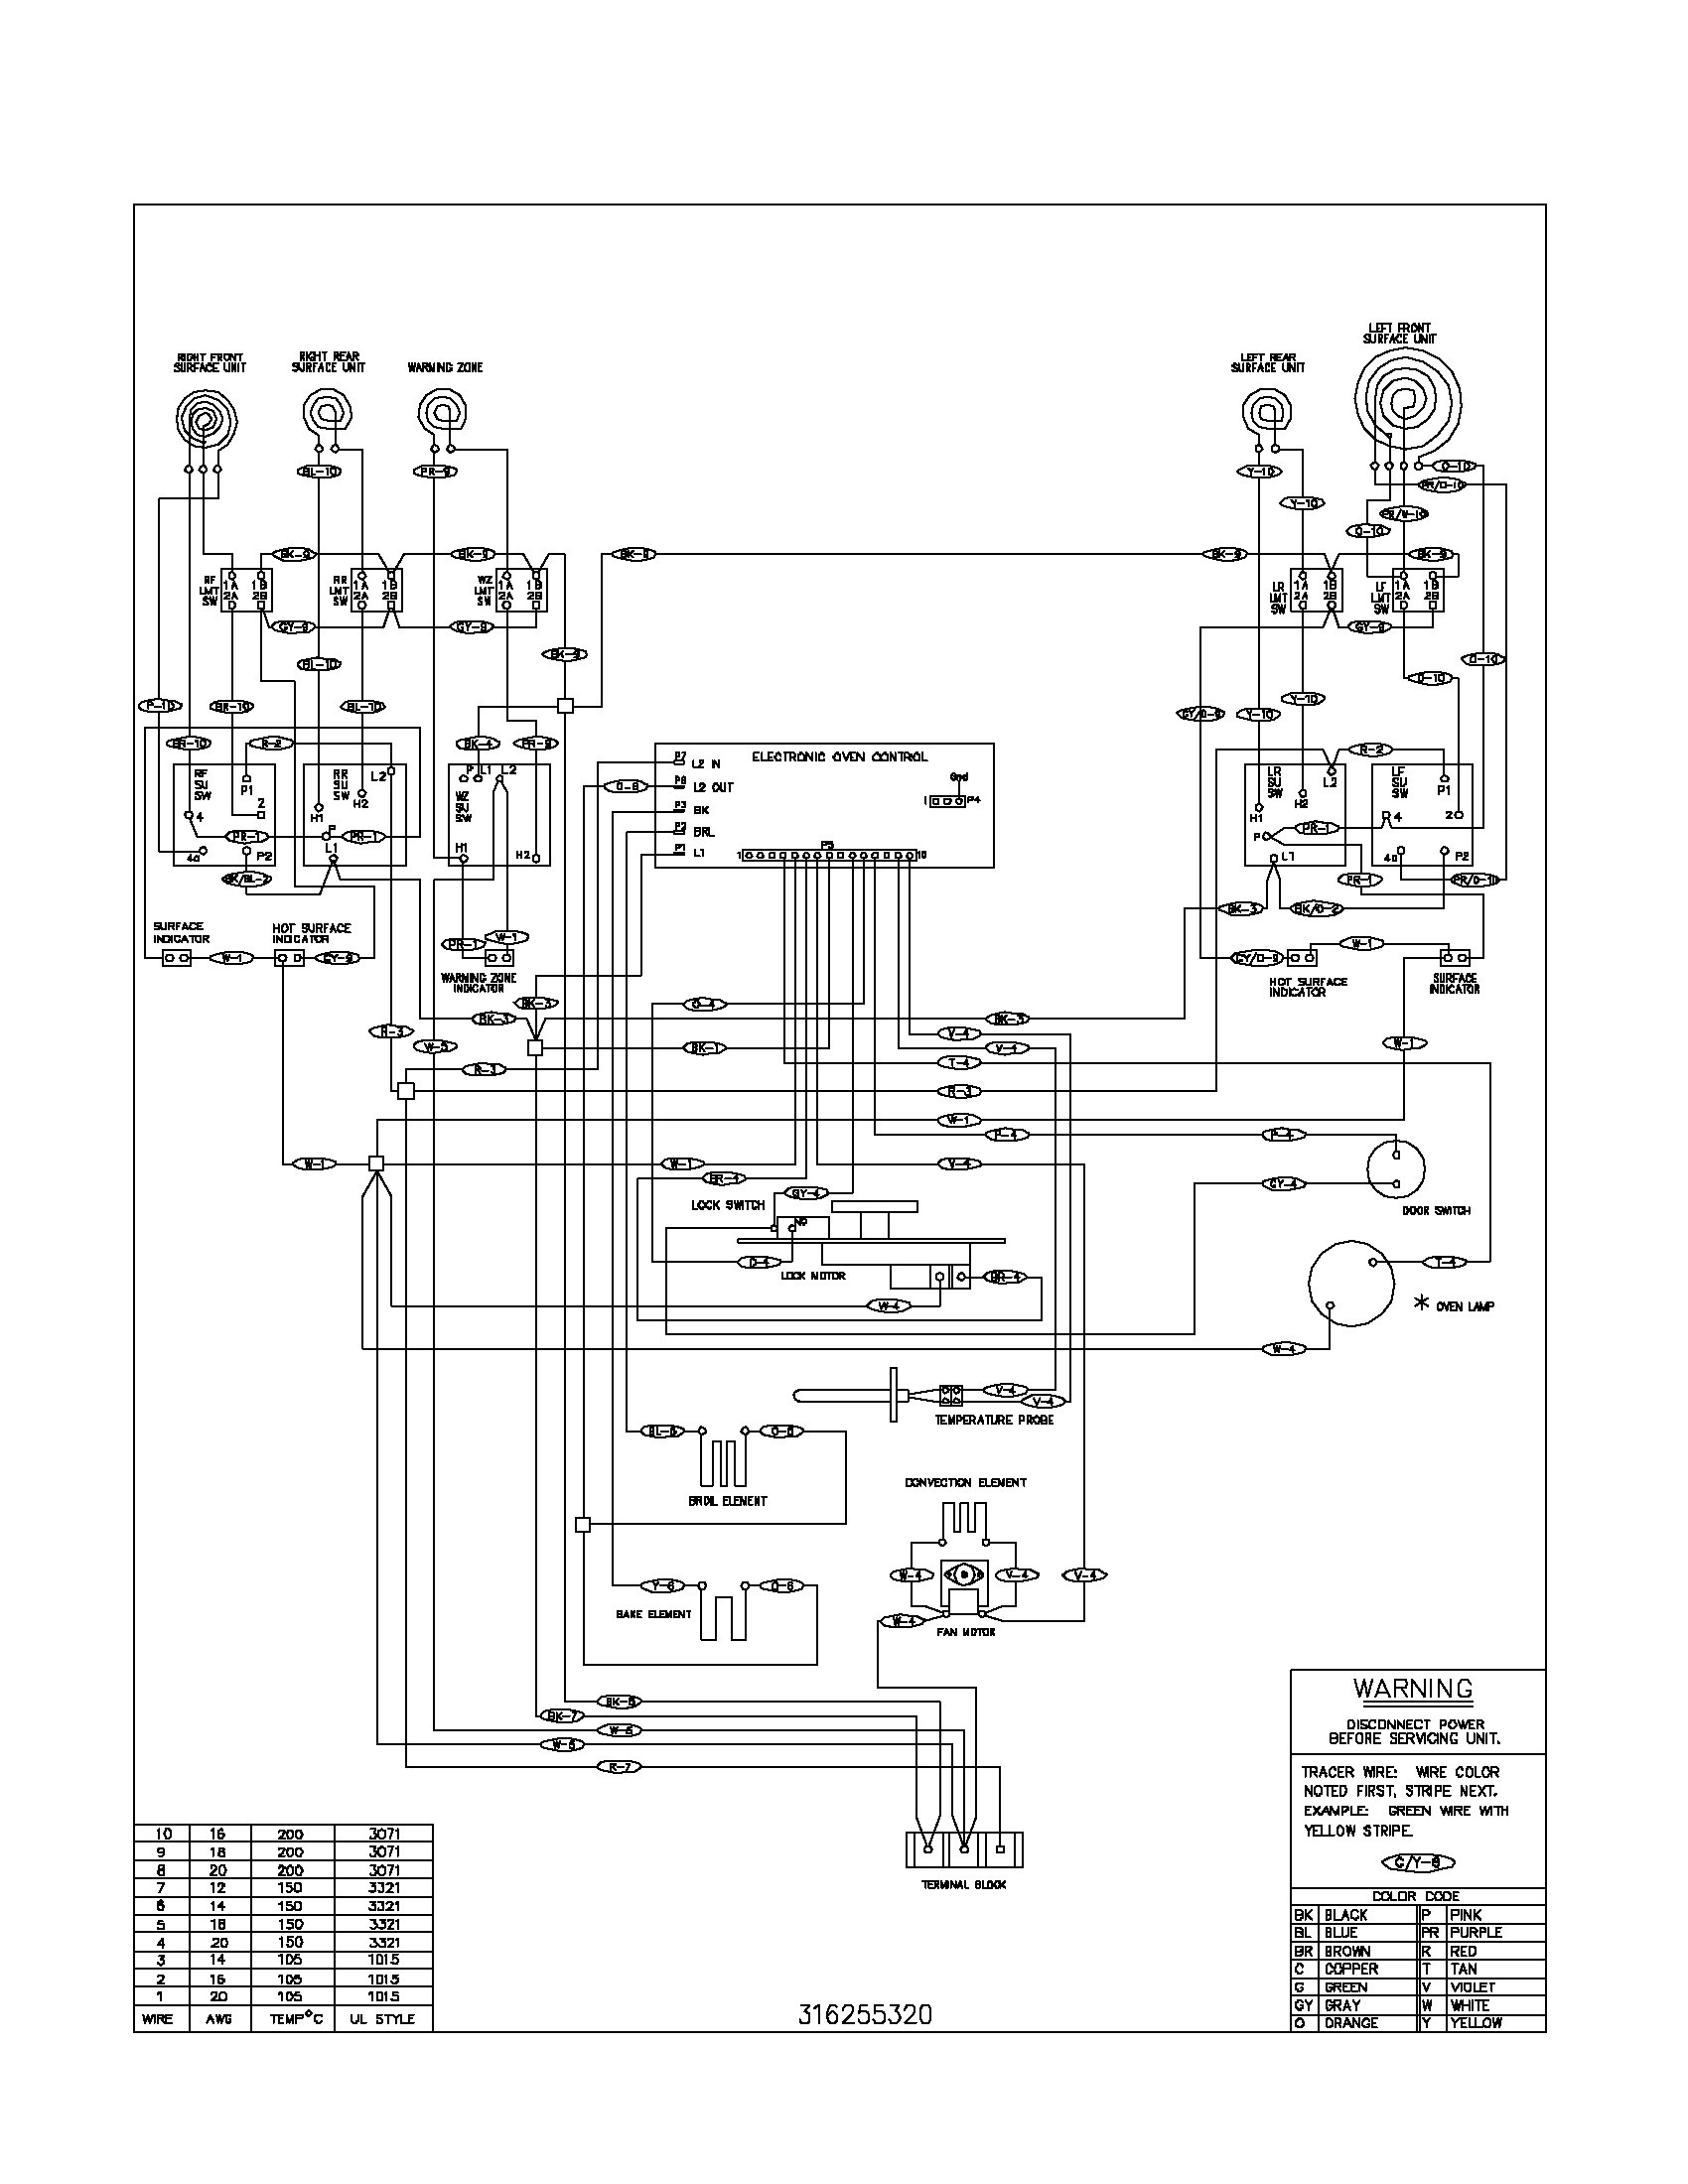 Ge Jkp1 Oven Wiring Diagram - Wiring Diagrams Hidden Ge Ats Wiring Diagram on